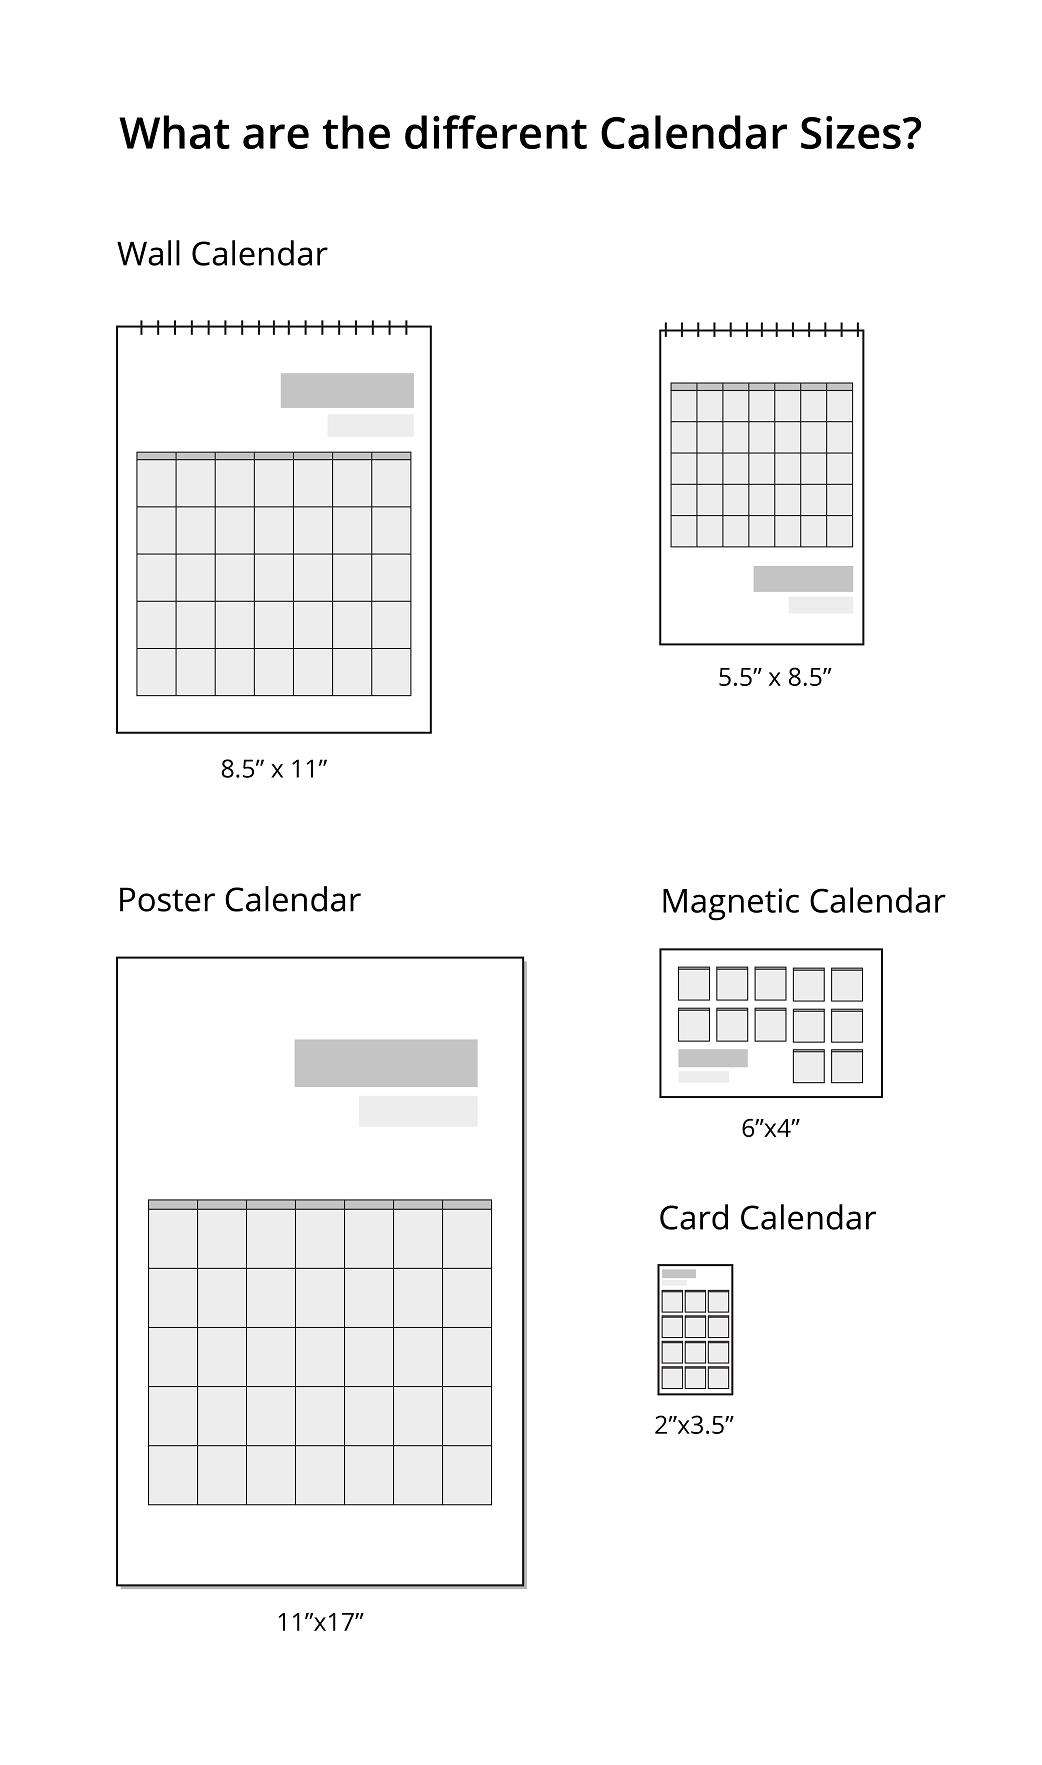 Calendar Types and Sizes